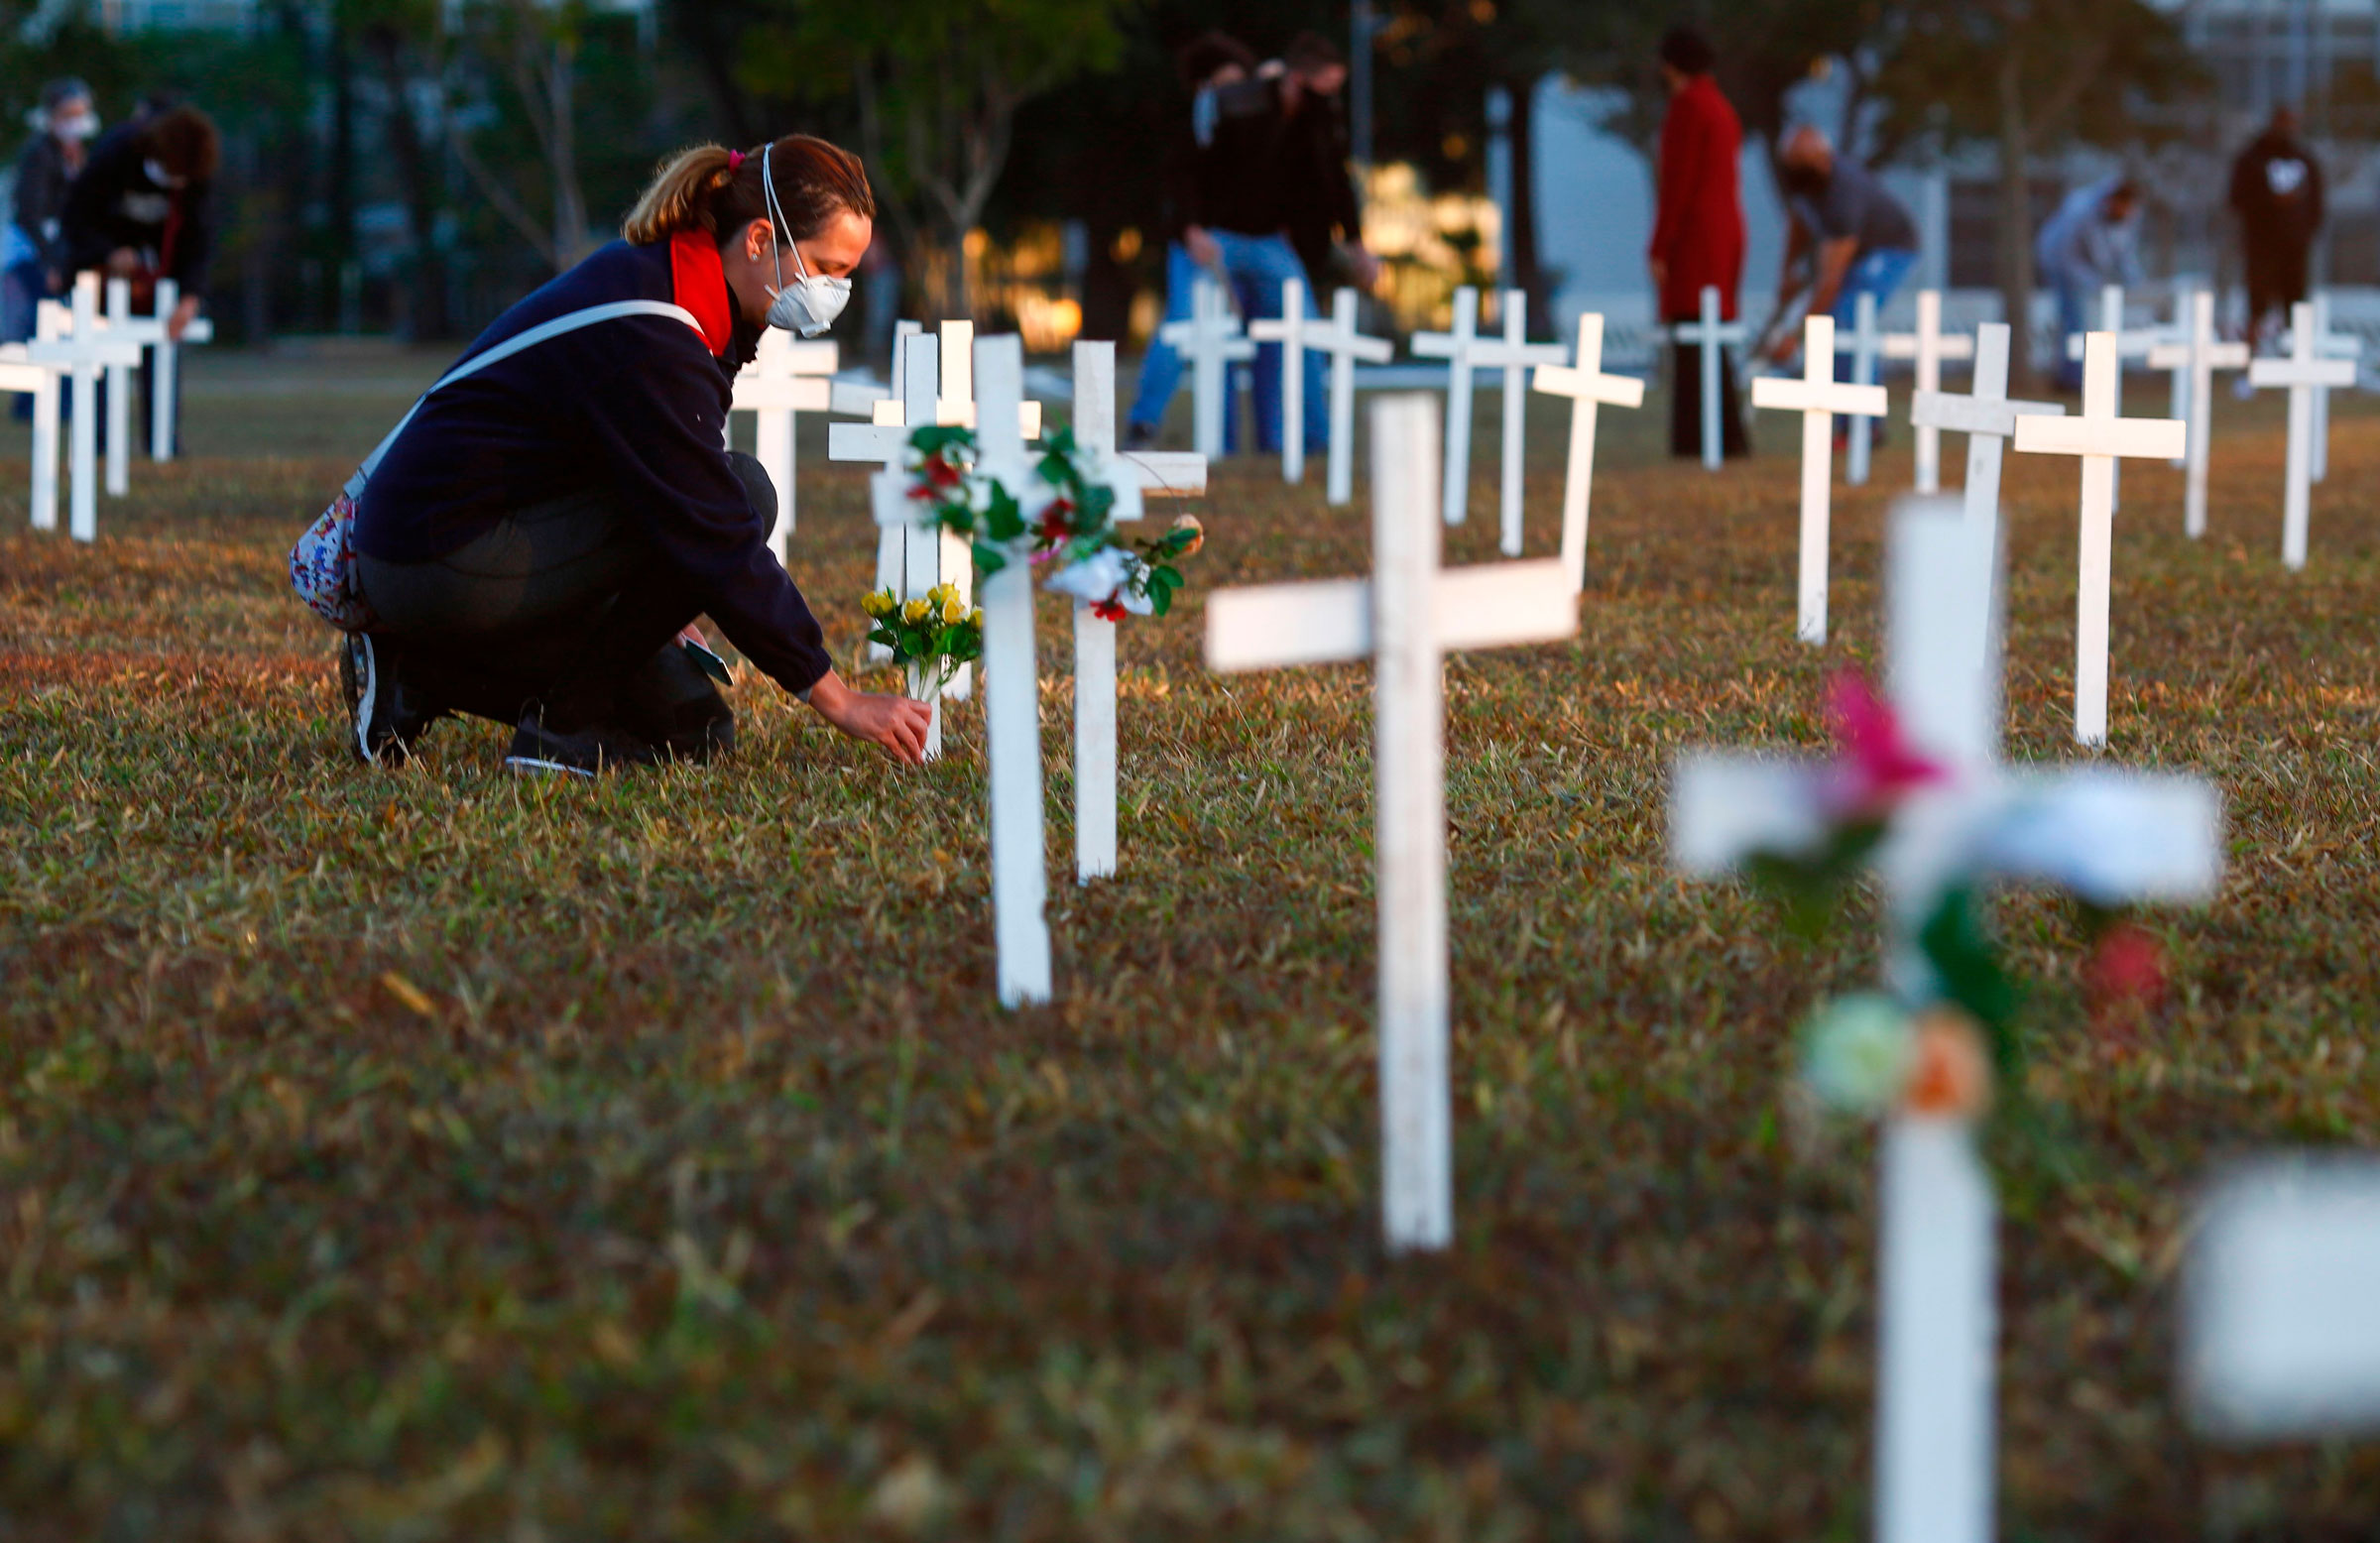 A demonstrator places flowers next to a cross during a protest in front of the National Congress in Brasilia, Brazil, on Sunday.